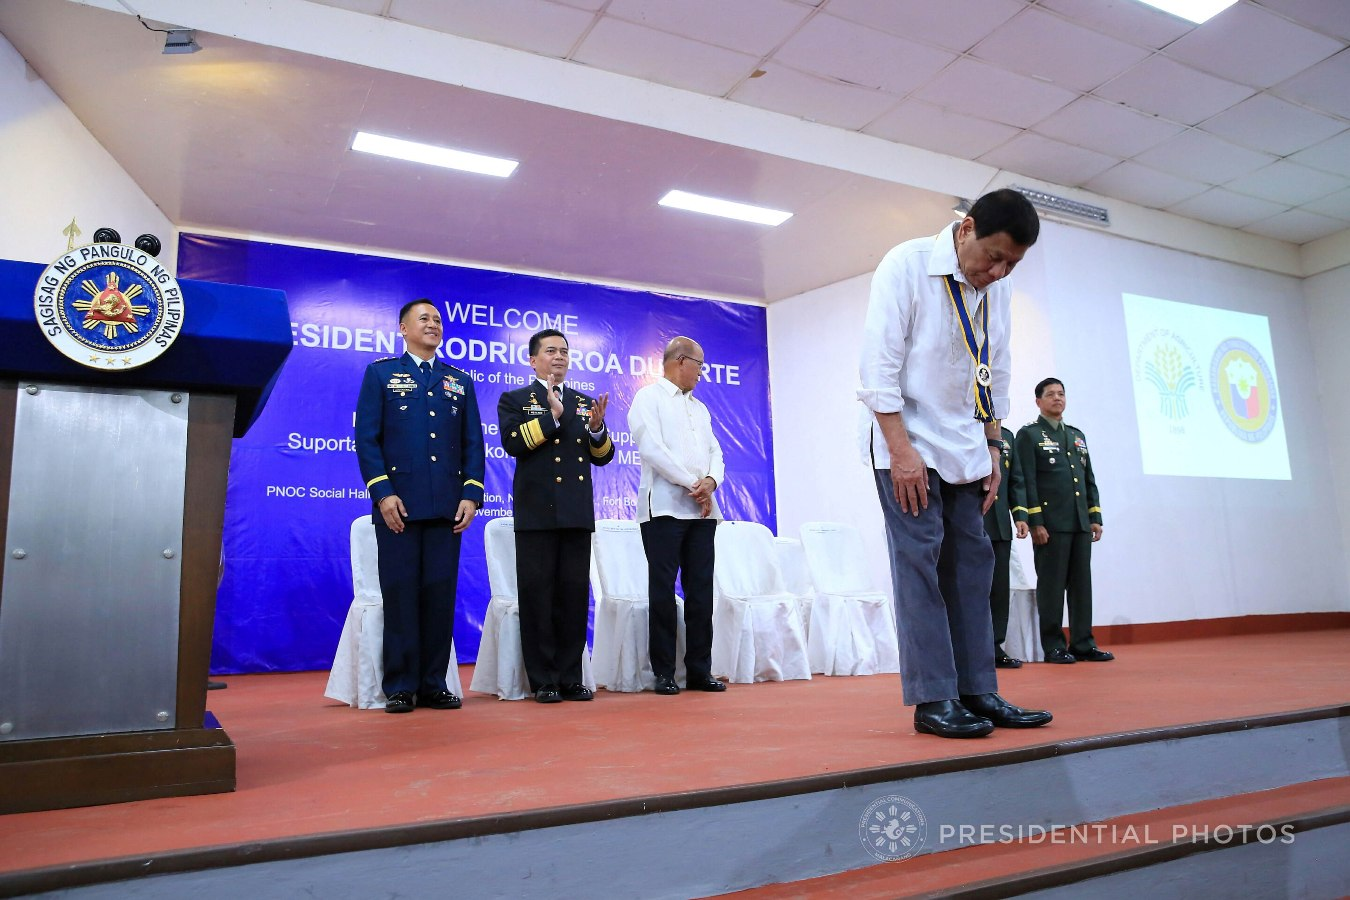 President Rodrigo Roa Duterte shows a gesture of respect as he takes center stage during the start of the Karne, Isda Supply Suporta sa Masa at Ekonomiya (KISS ME) Project launching at Fort Andres Bonifacio in Taguig City on November 7, 2017. Also in the photo are Philippine Air Force Commander Lt. Gen. Galileo Kintanar Jr., Philippine Navy commander Ronald Mercado, Defense Secretary Delfin Lorenzana, and Philippine Army Commander Lt. Gen. Rolando Bautista. ALBERT ALCAIN/PRESIDENTIAL PHOTO